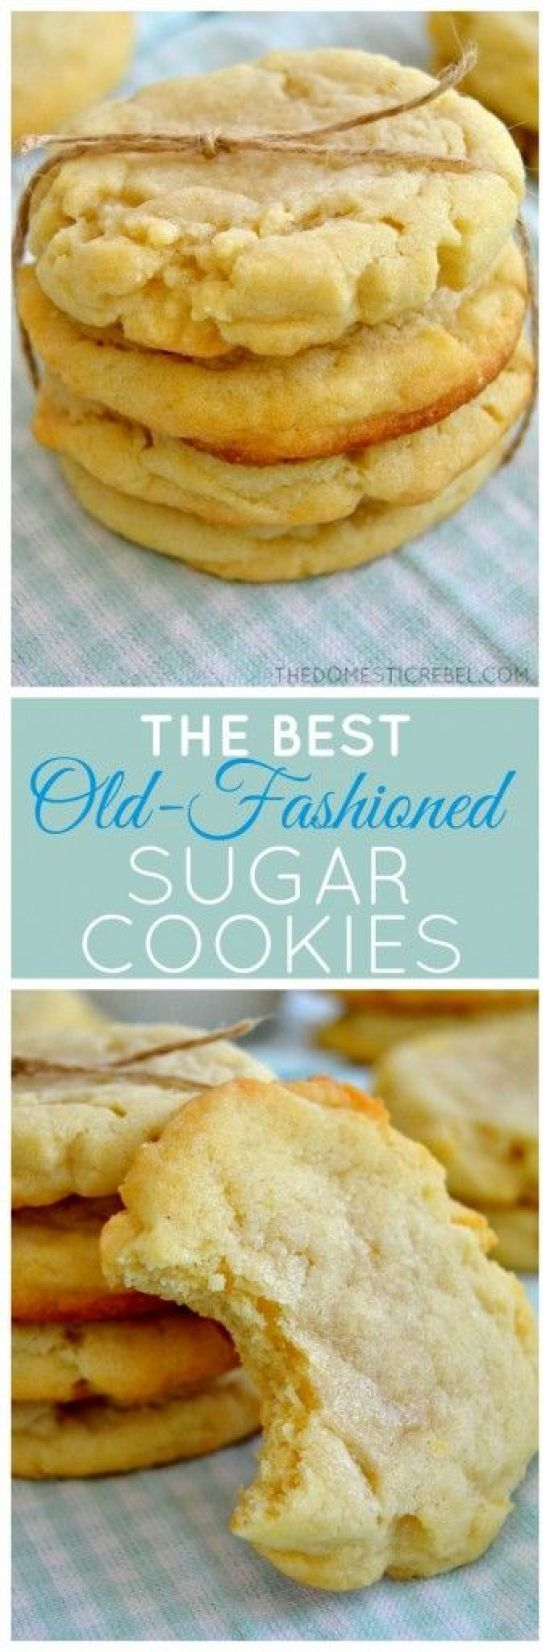 The Best Old-Fashioned Sugar Cookies Recipe | The Domestic Rebel